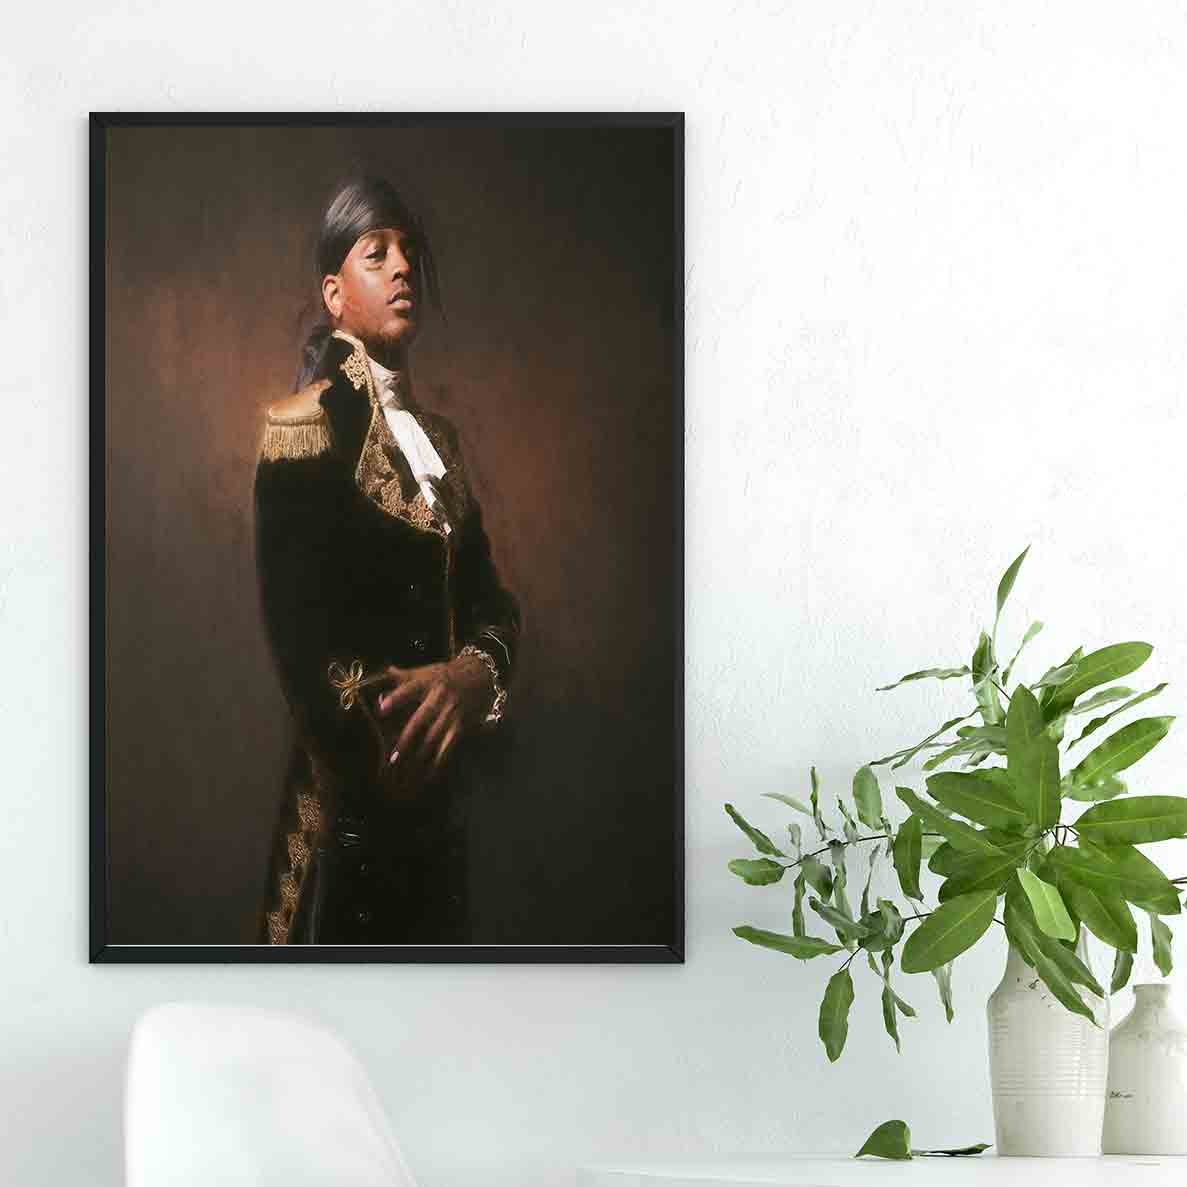 D253 Ski Mask The Slump God New 2018 Rap Music Cover Album Art Silk Poster Decoration Print canavas wall Pictures 24x36 27x40 image